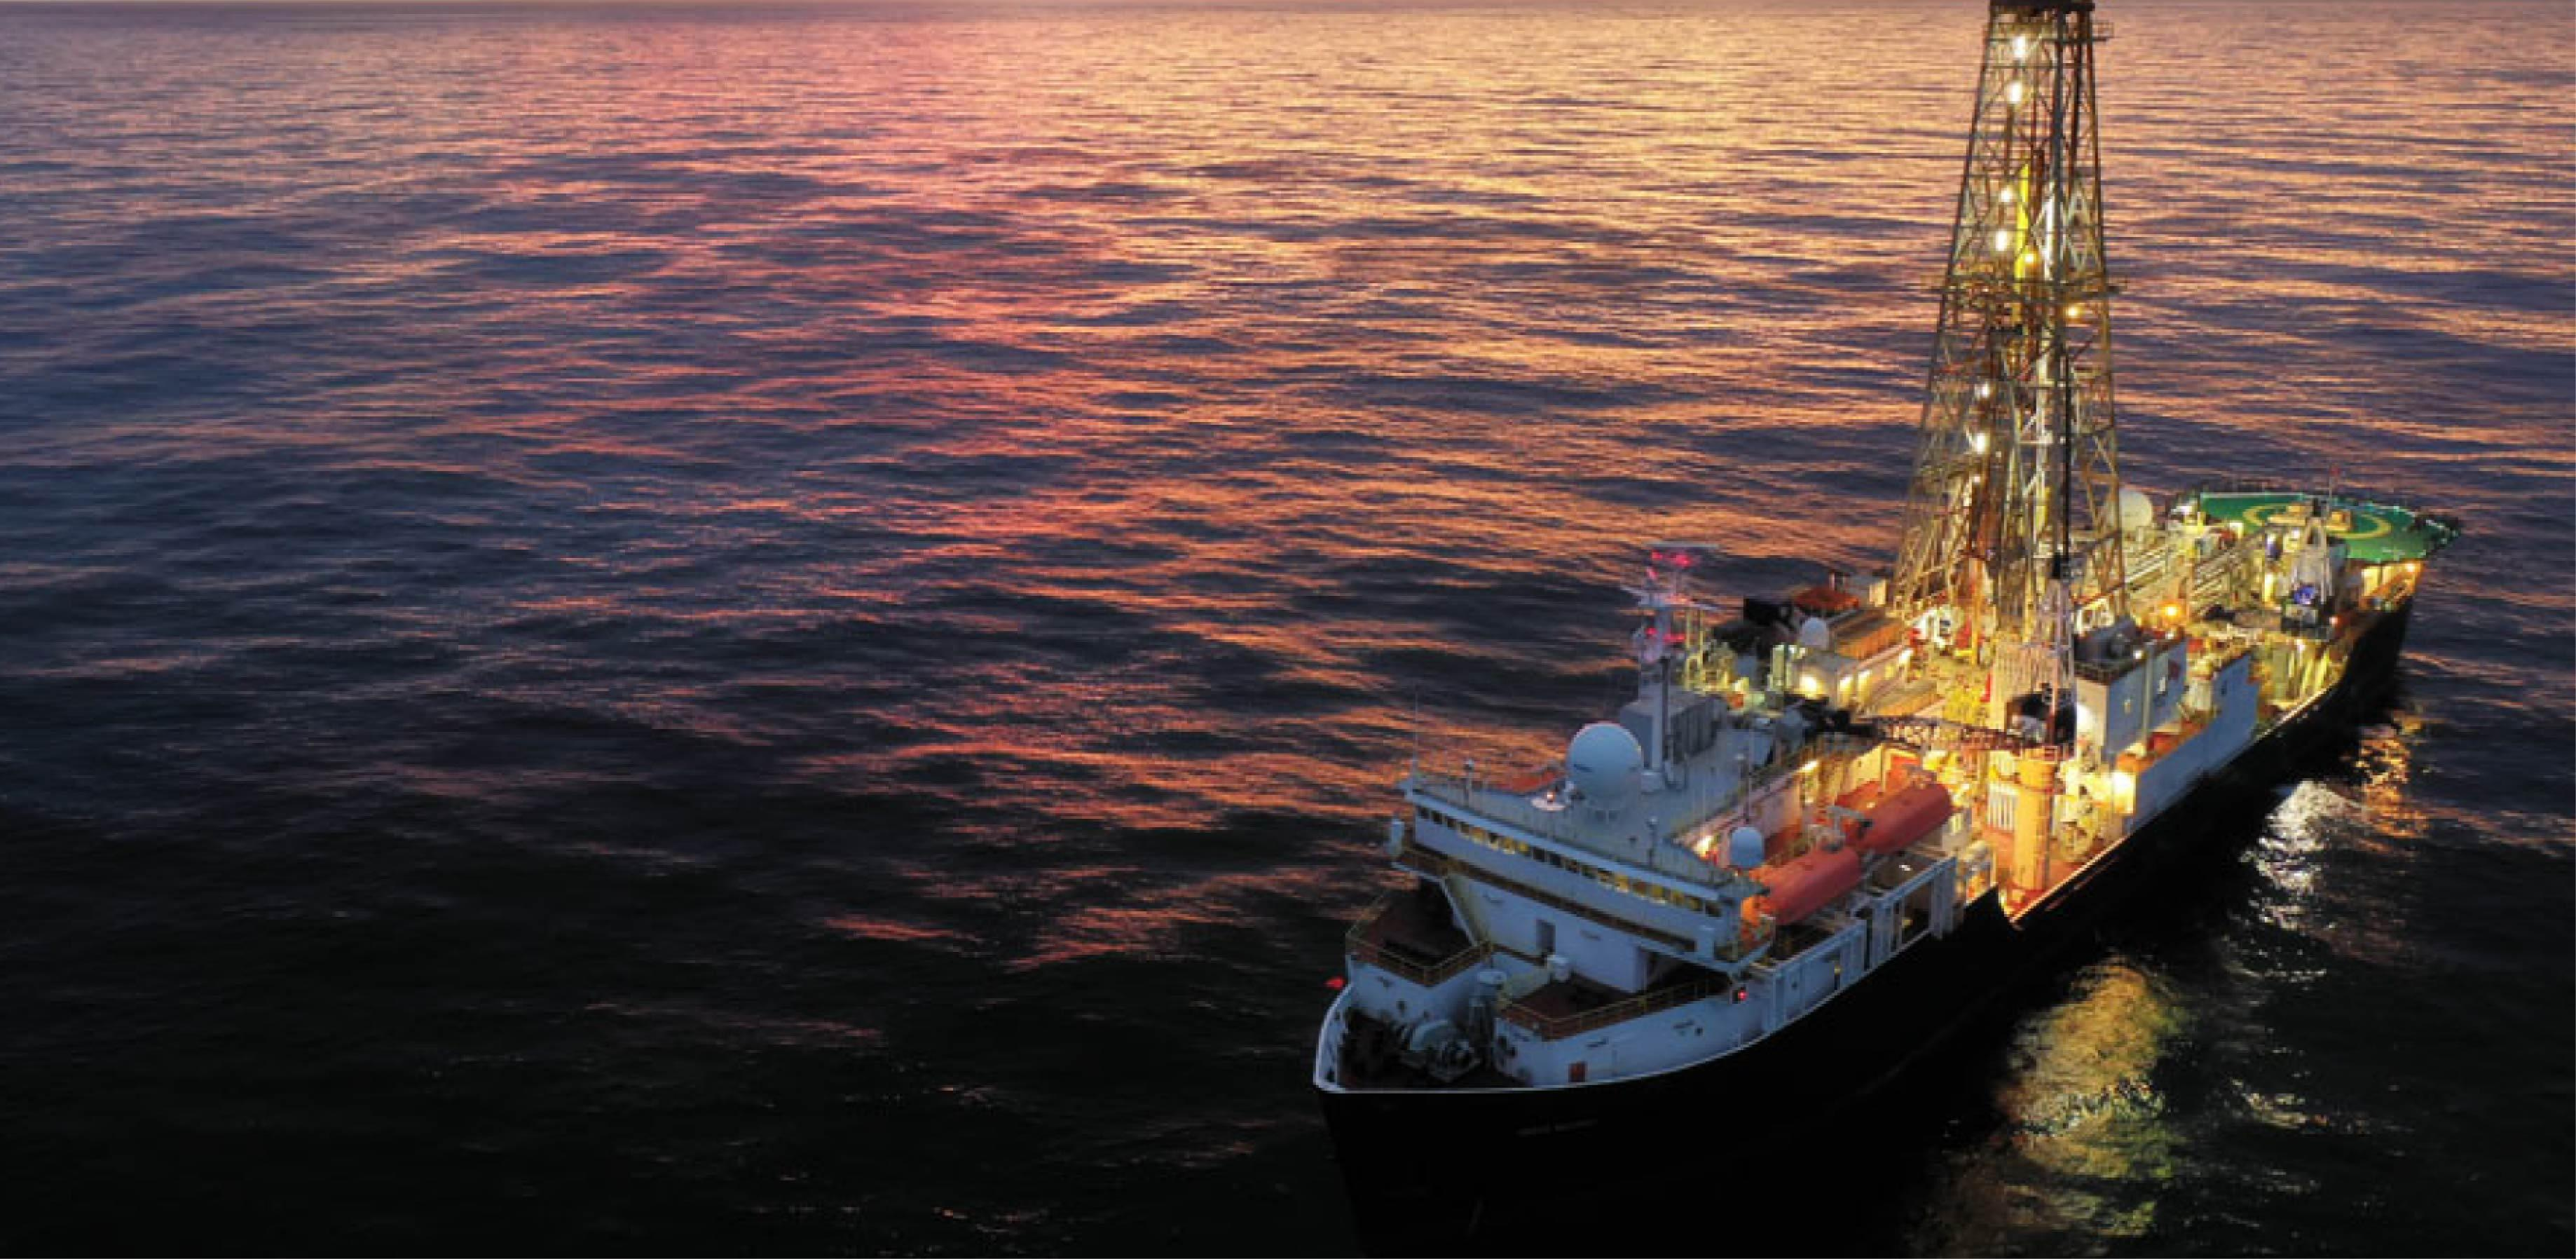 Image of sun setting behind drilling equipment on a ship